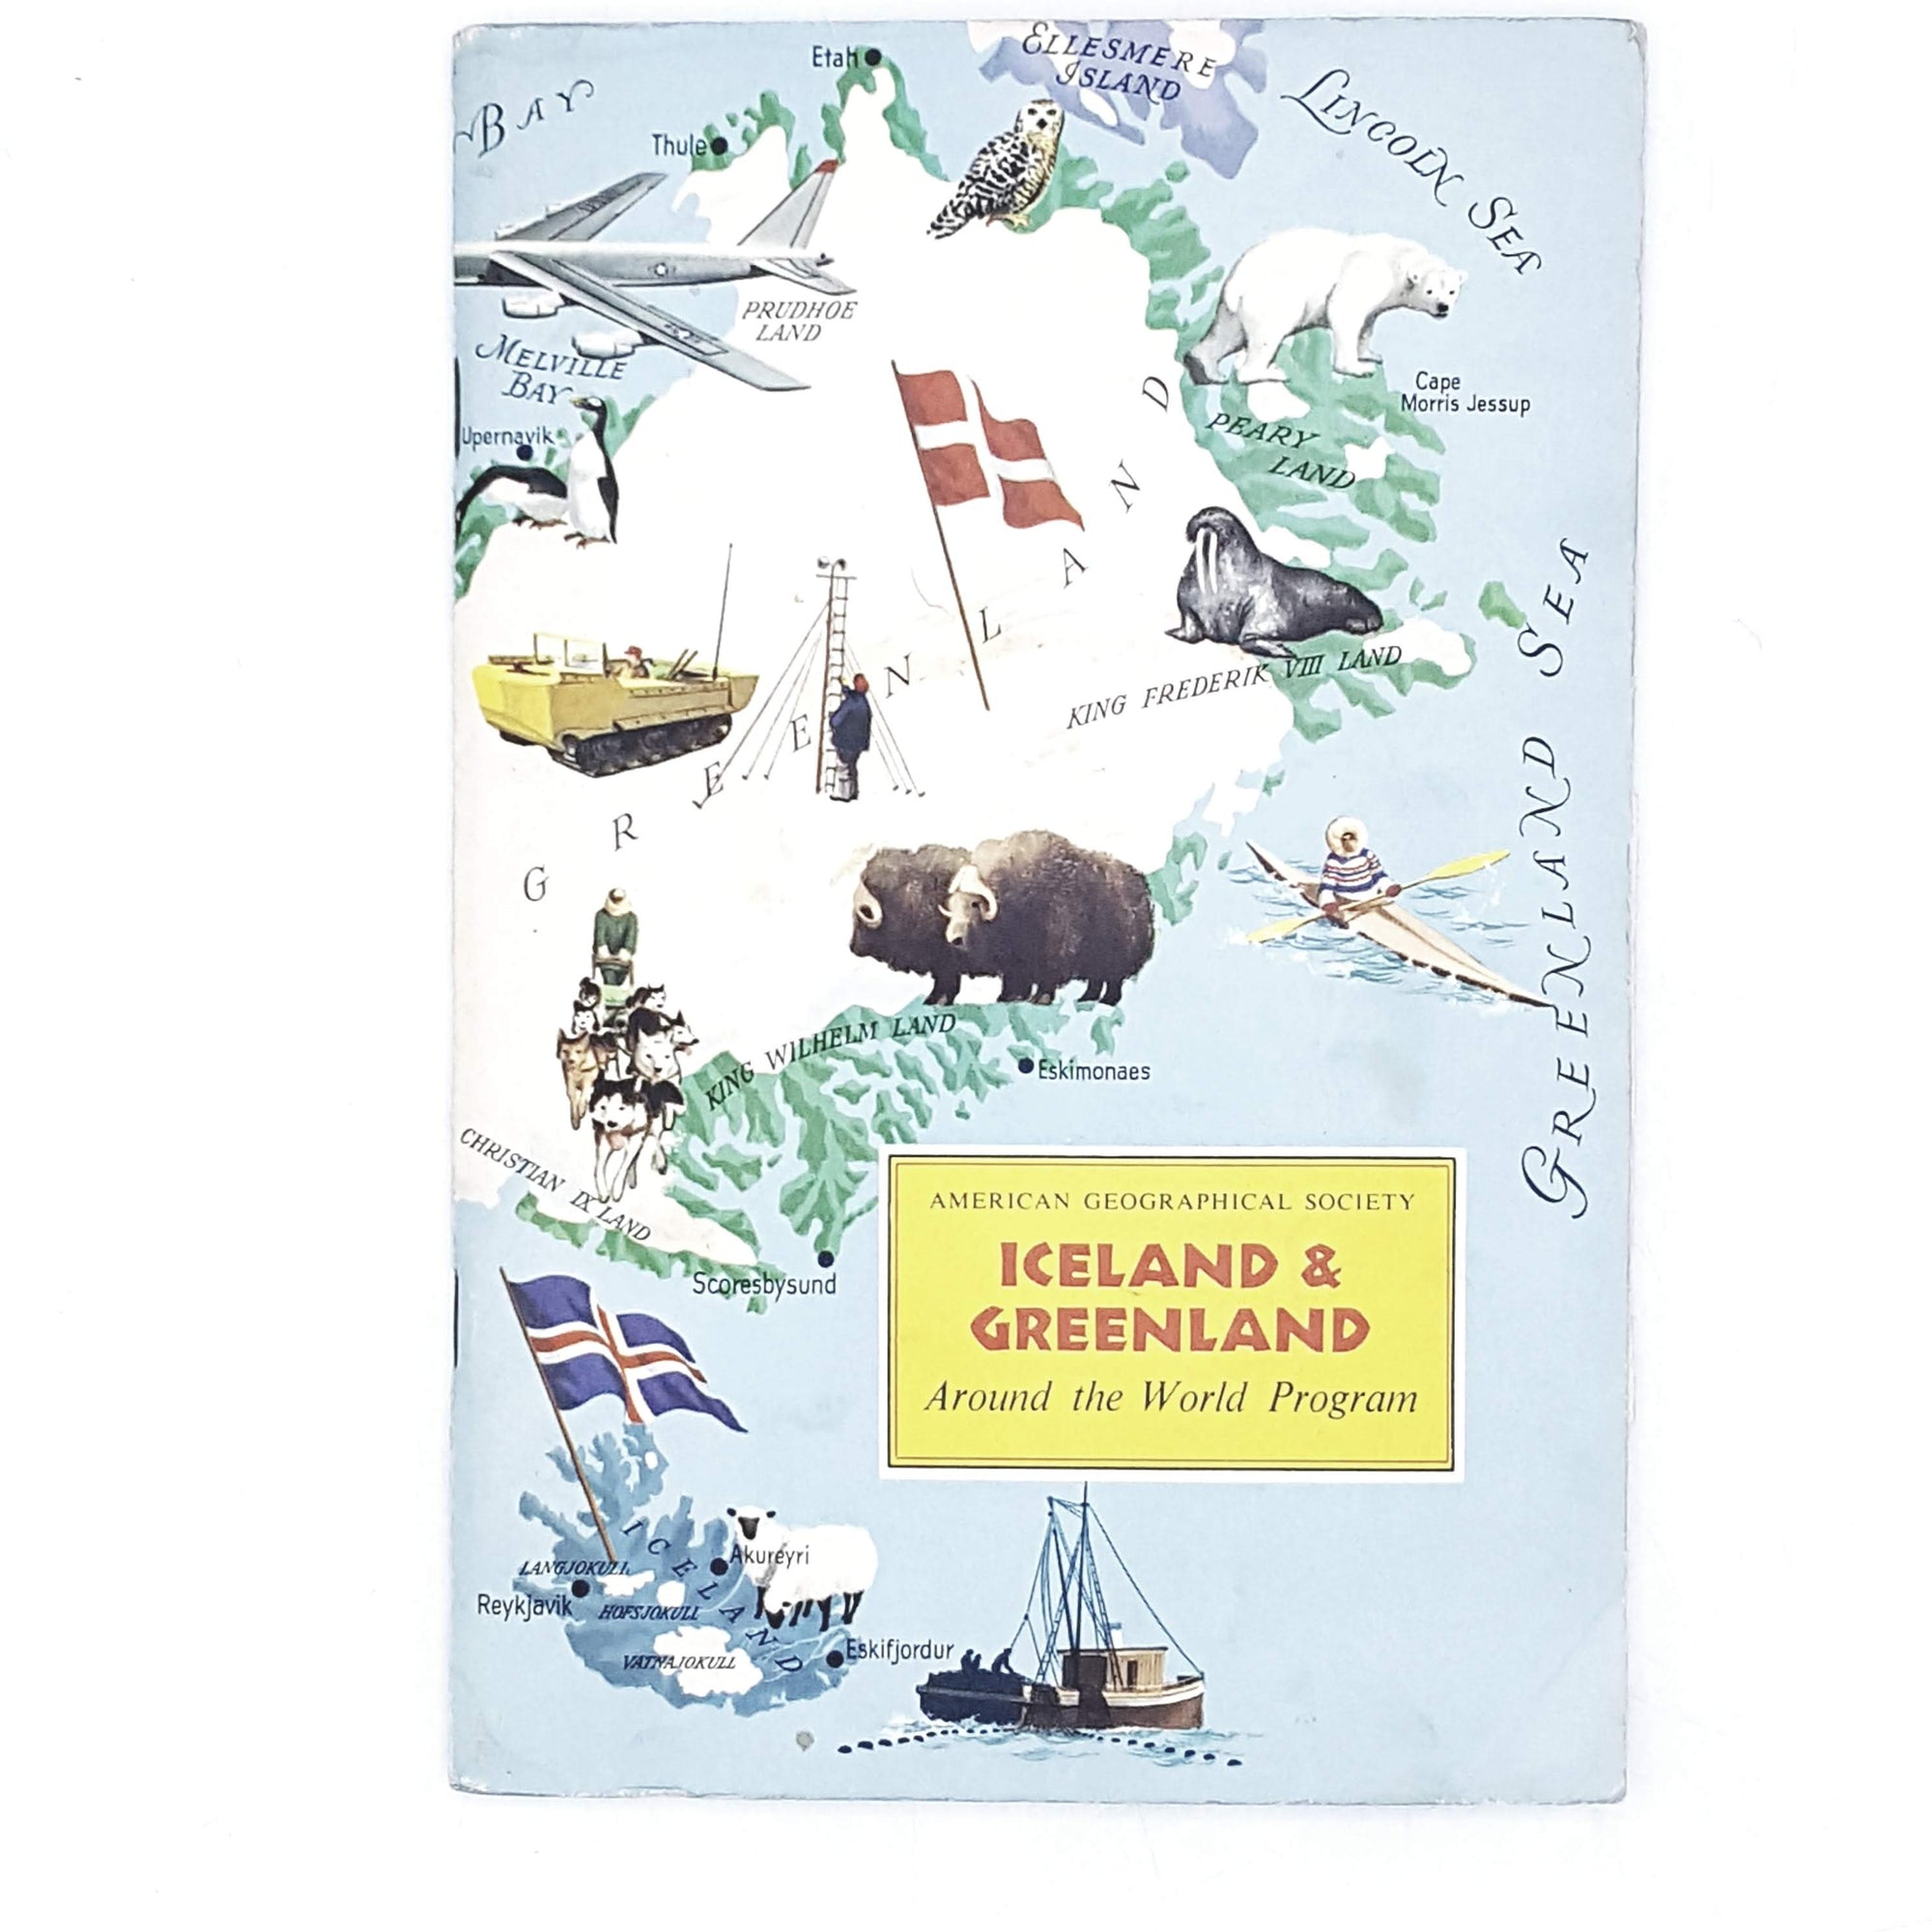 Vintage Travel: Iceland and Greenland by Michael Bond 1964